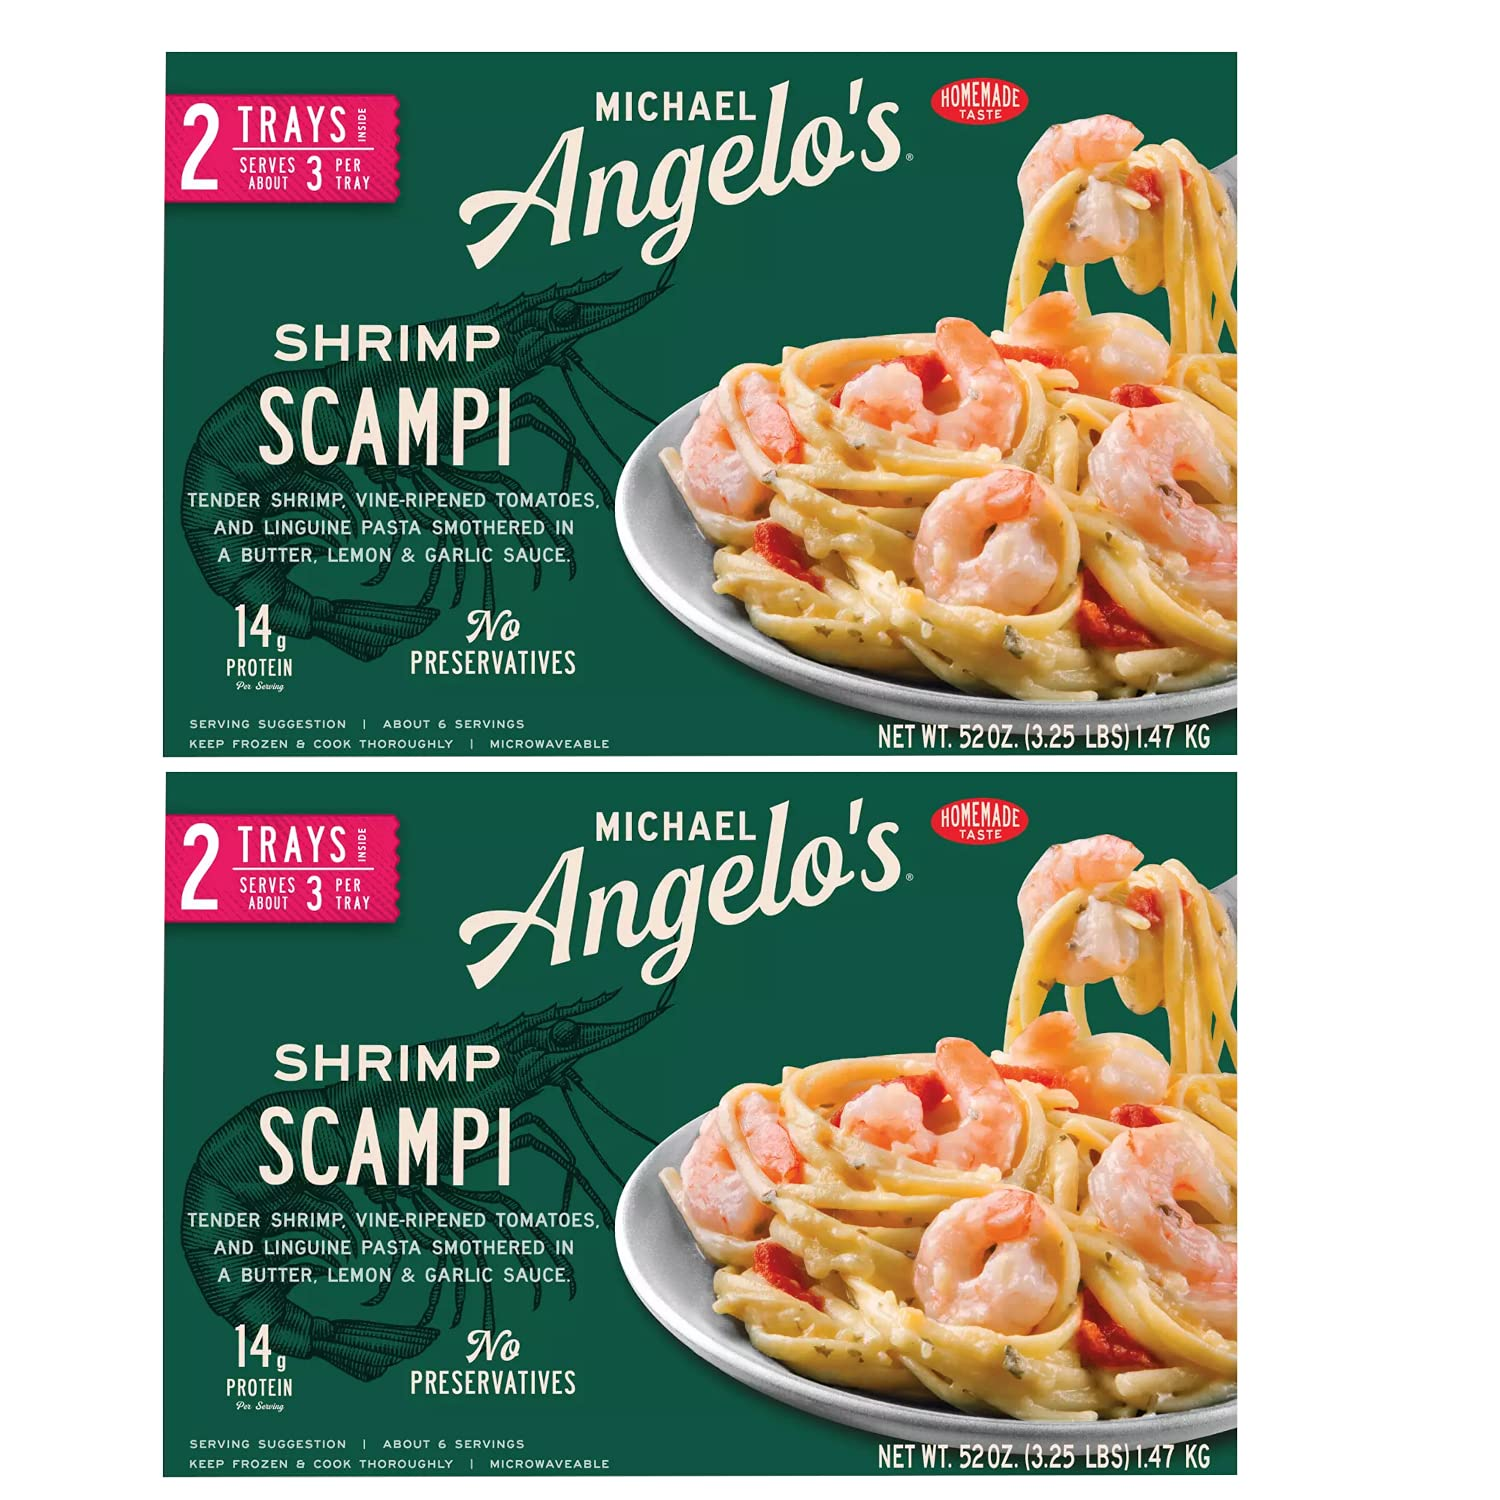 Michael Angelo's Frozen Save money Gluten Year-end annual account and Free Preservative Tender Shri